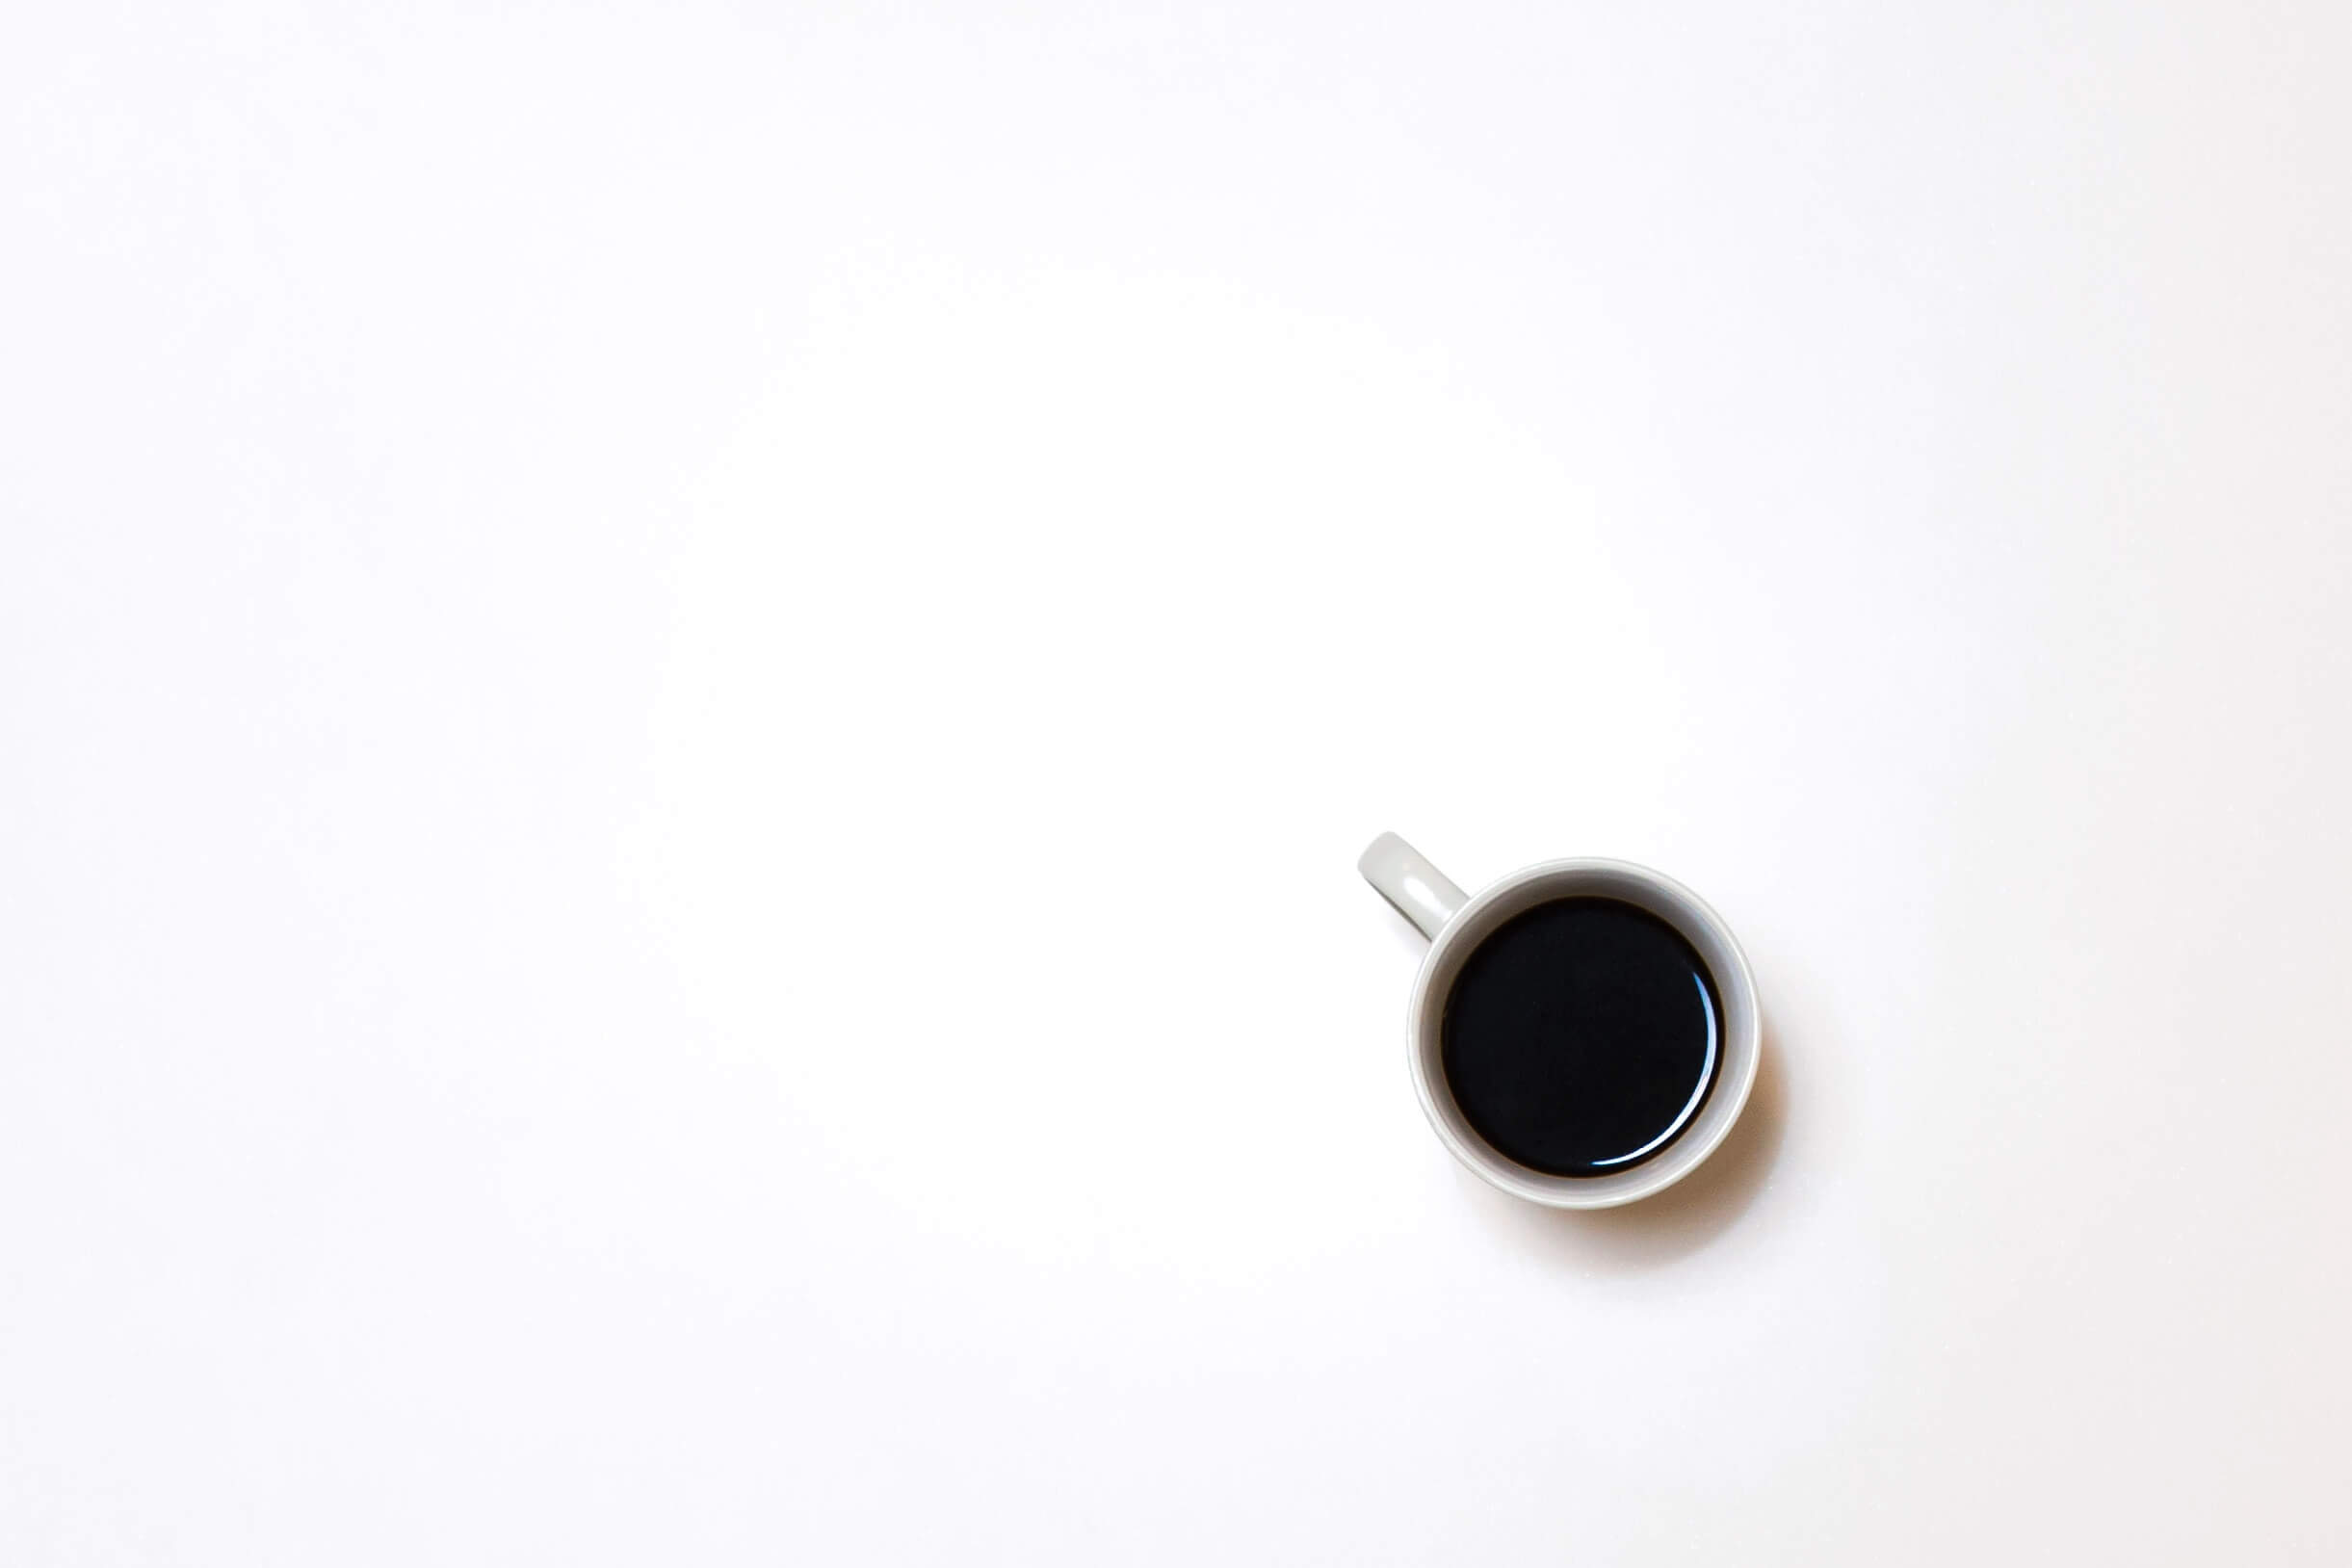 Coffee cup on white background - Photo by Isaac Benhesed on Unsplash